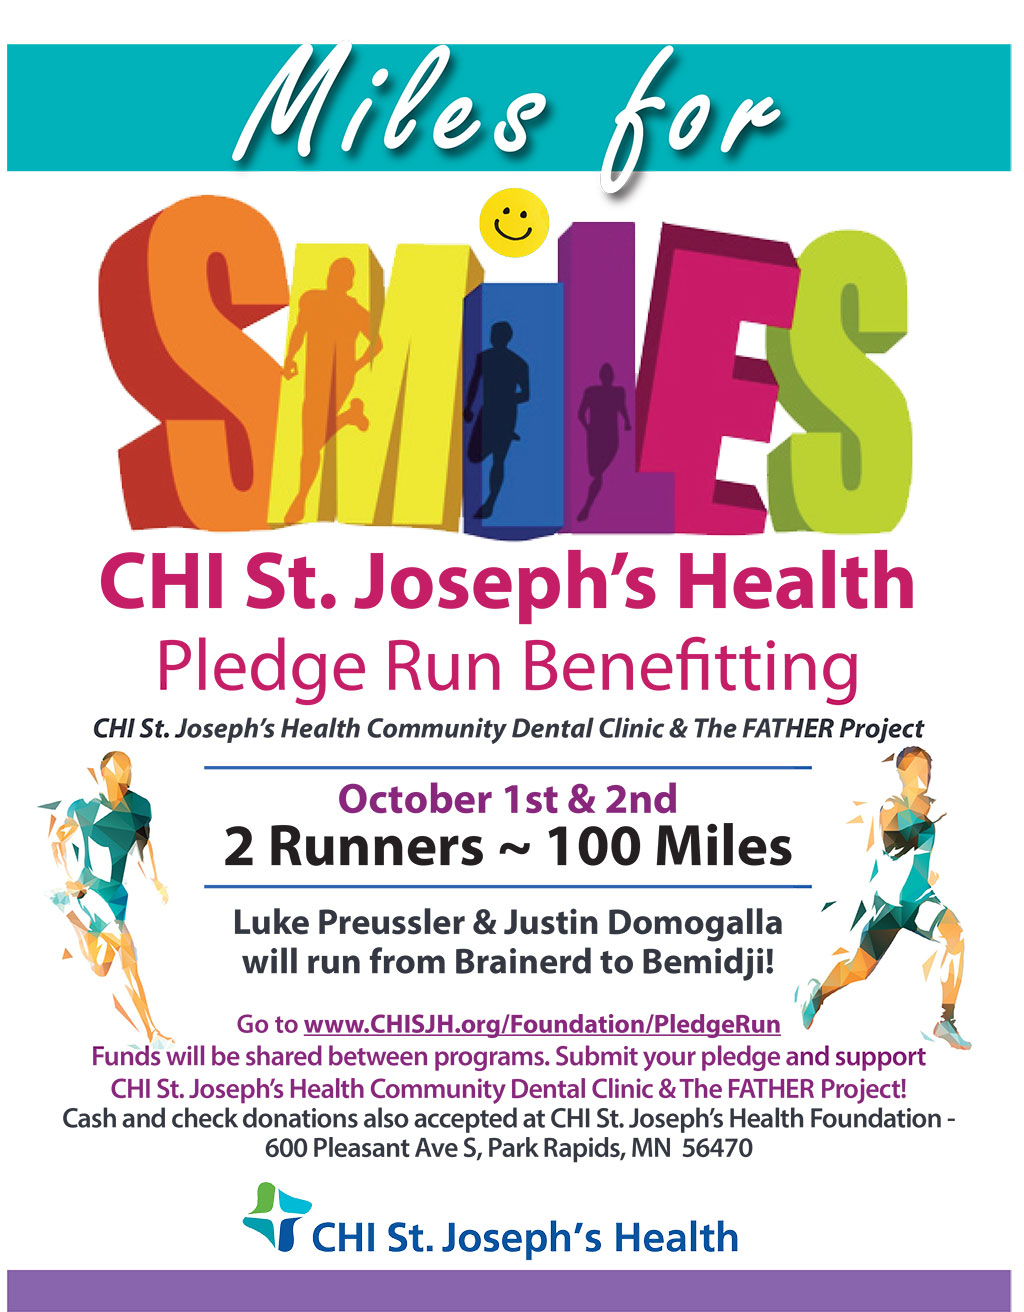 Miles for Smiles Pledge Run